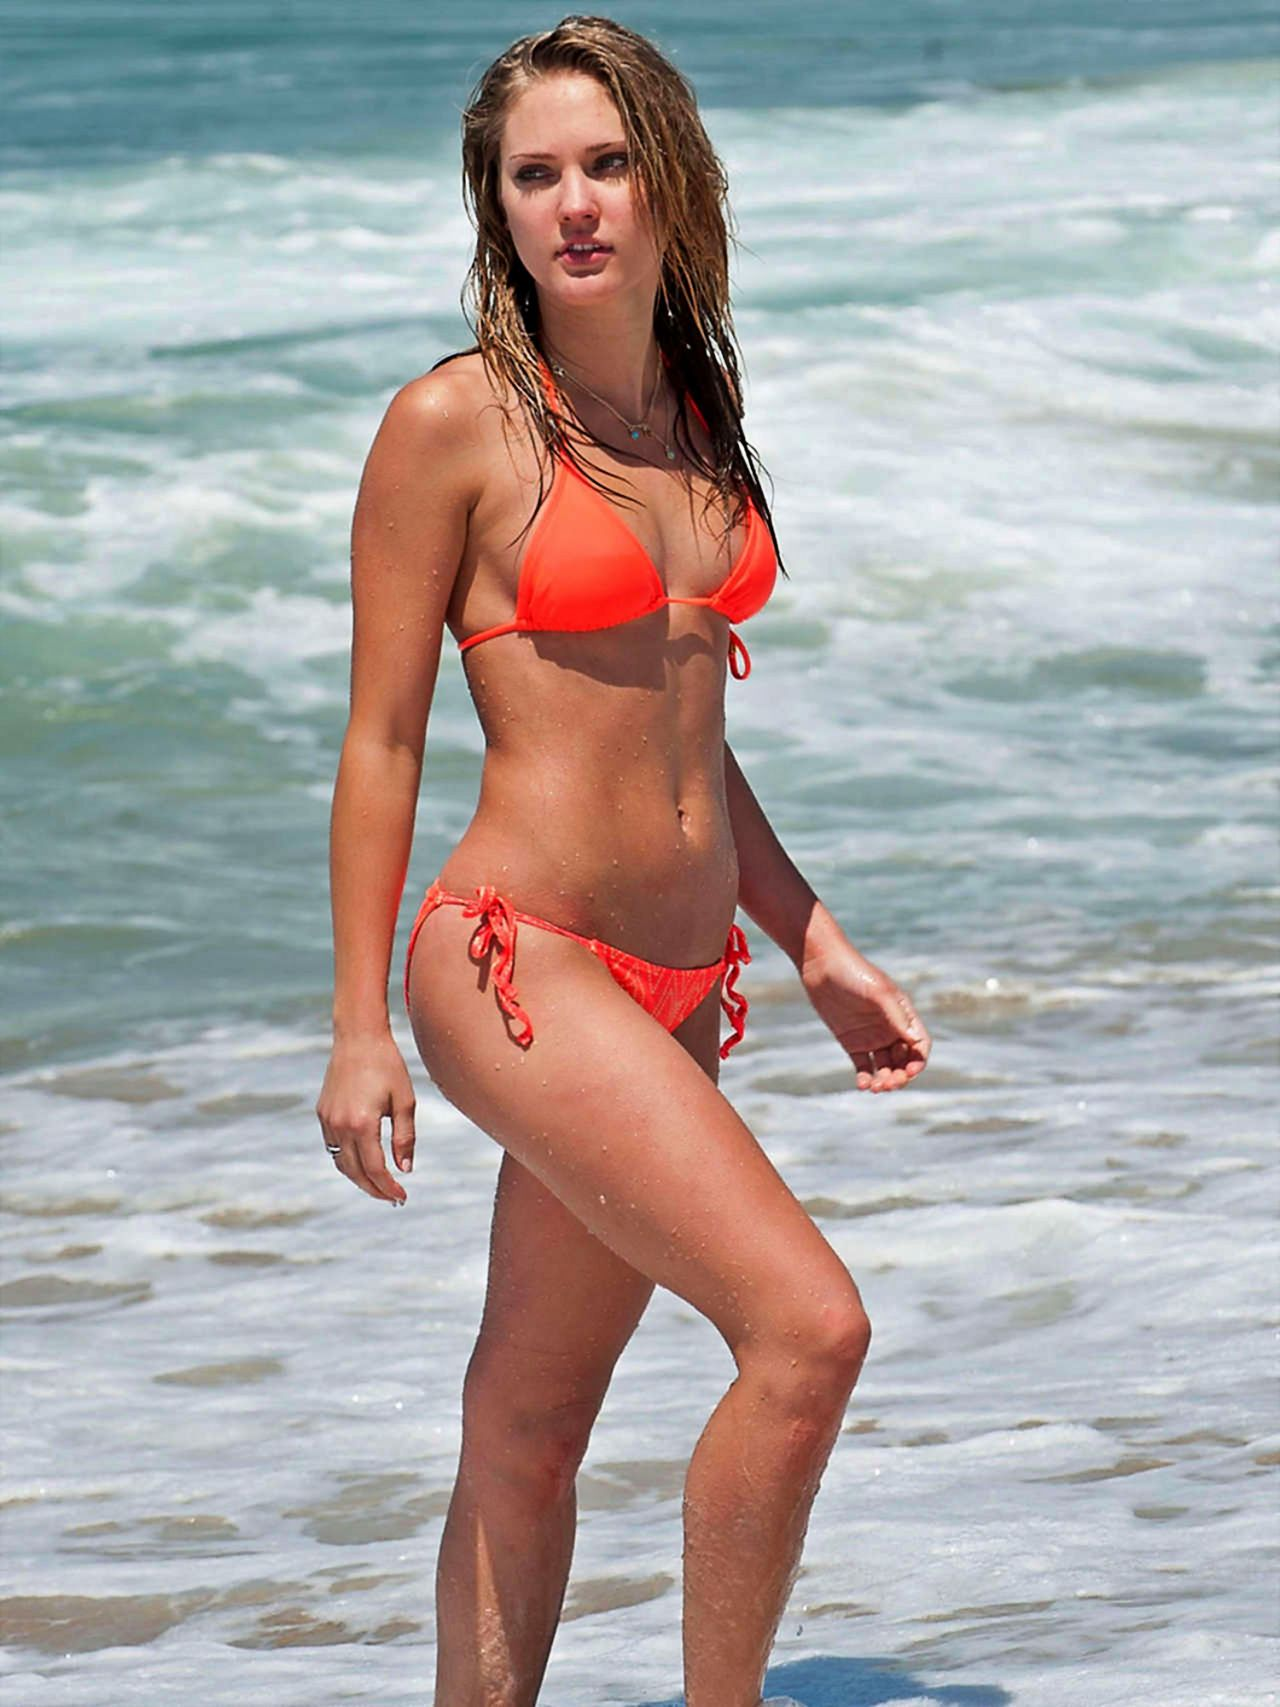 Ciara Hanna In Orange Bikini Beach In La June 2014